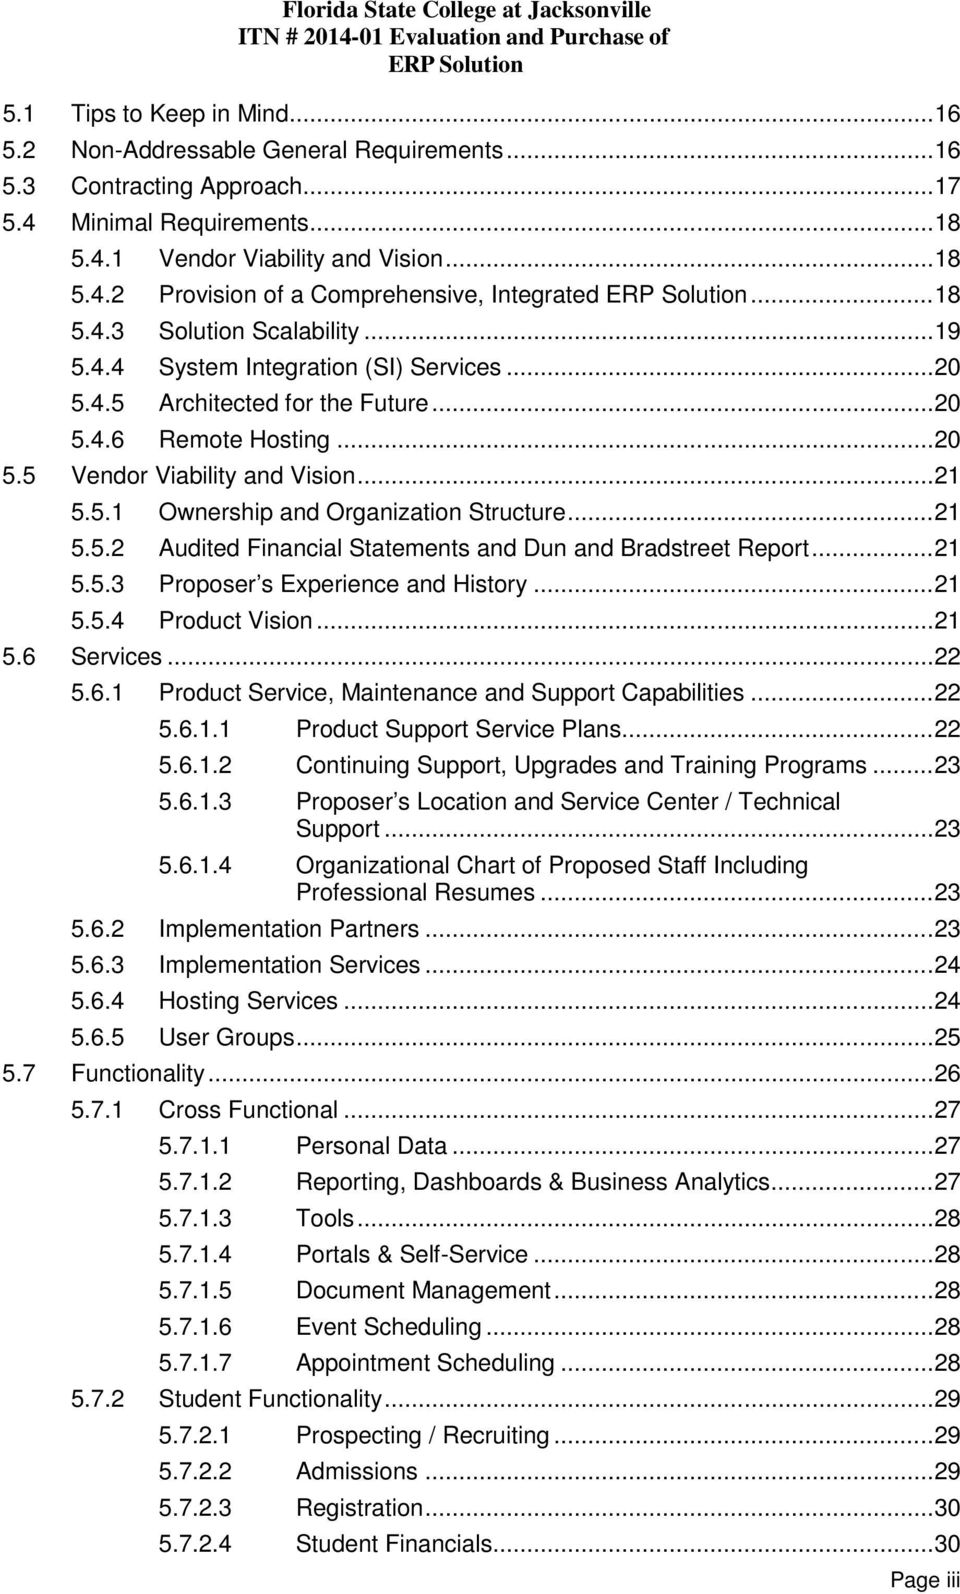 .. 20 5.4.5 Architected for the Future... 20 5.4.6 Remote Hosting... 20 5.5 Vendor Viability and Vision... 21 5.5.1 Ownership and Organization Structure... 21 5.5.2 Audited Financial Statements and Dun and Bradstreet Report.